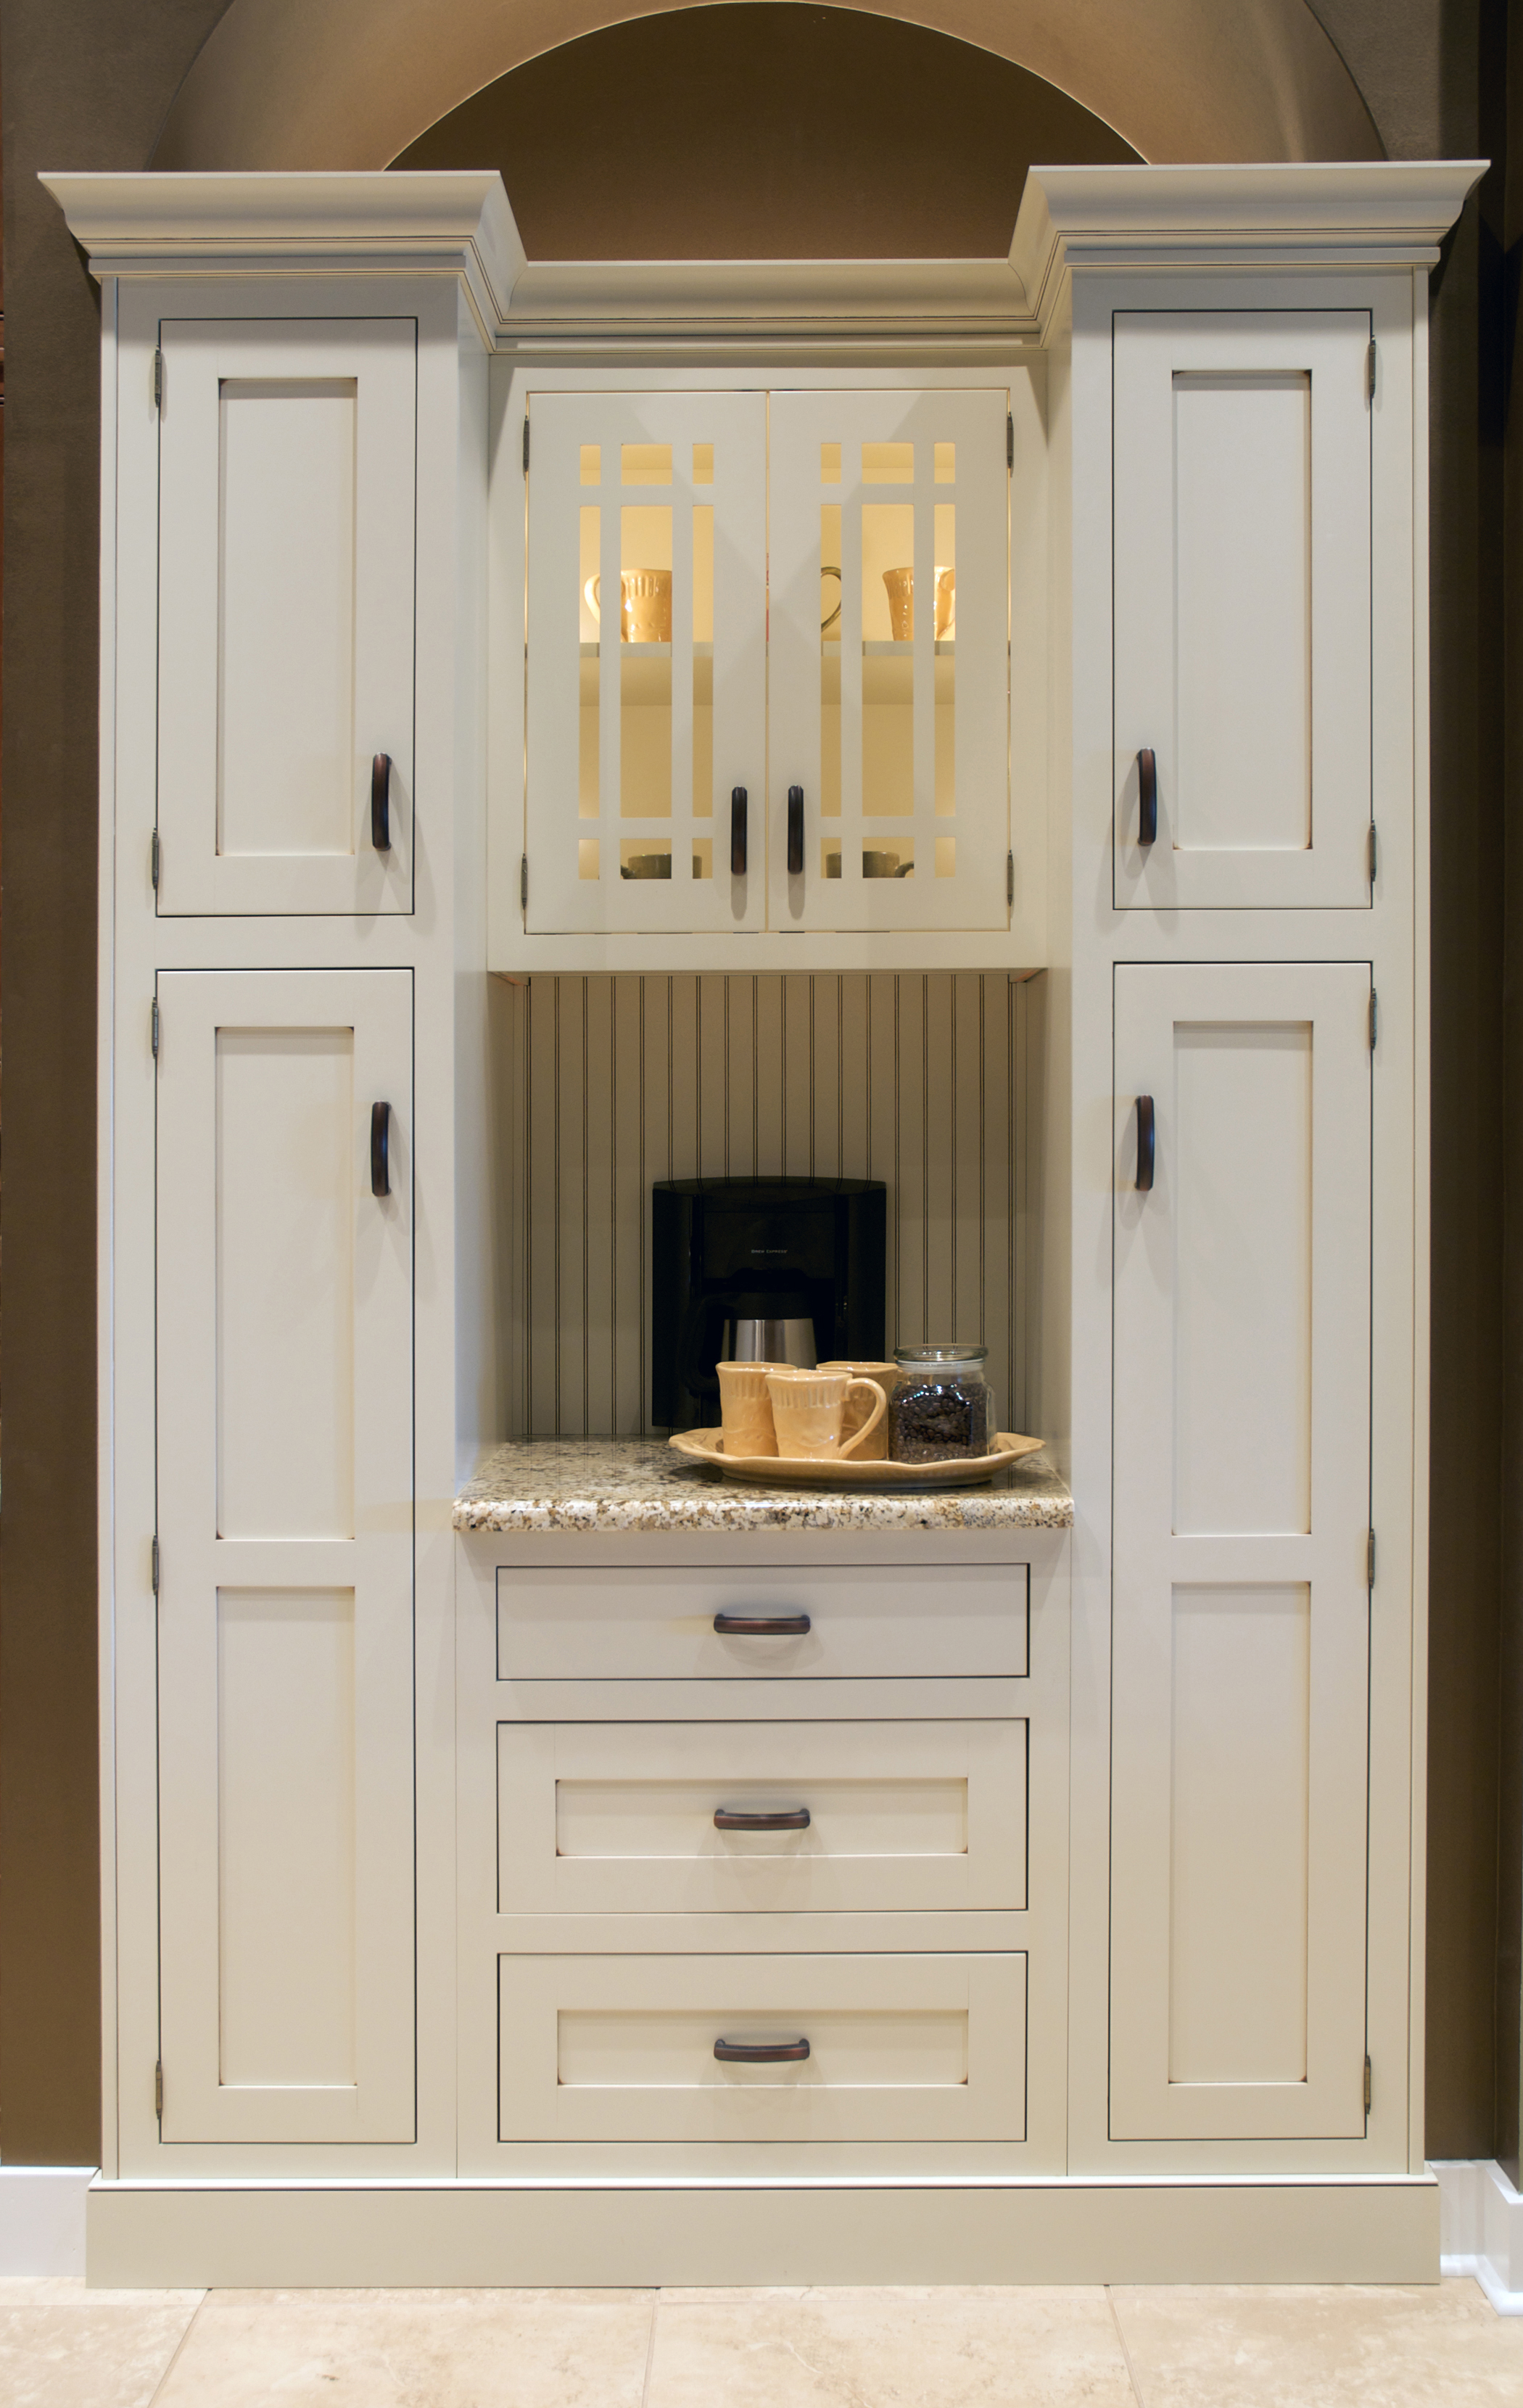 Kitchen, Bath and Closet Cabinetry by Wellborn Cabinet ...